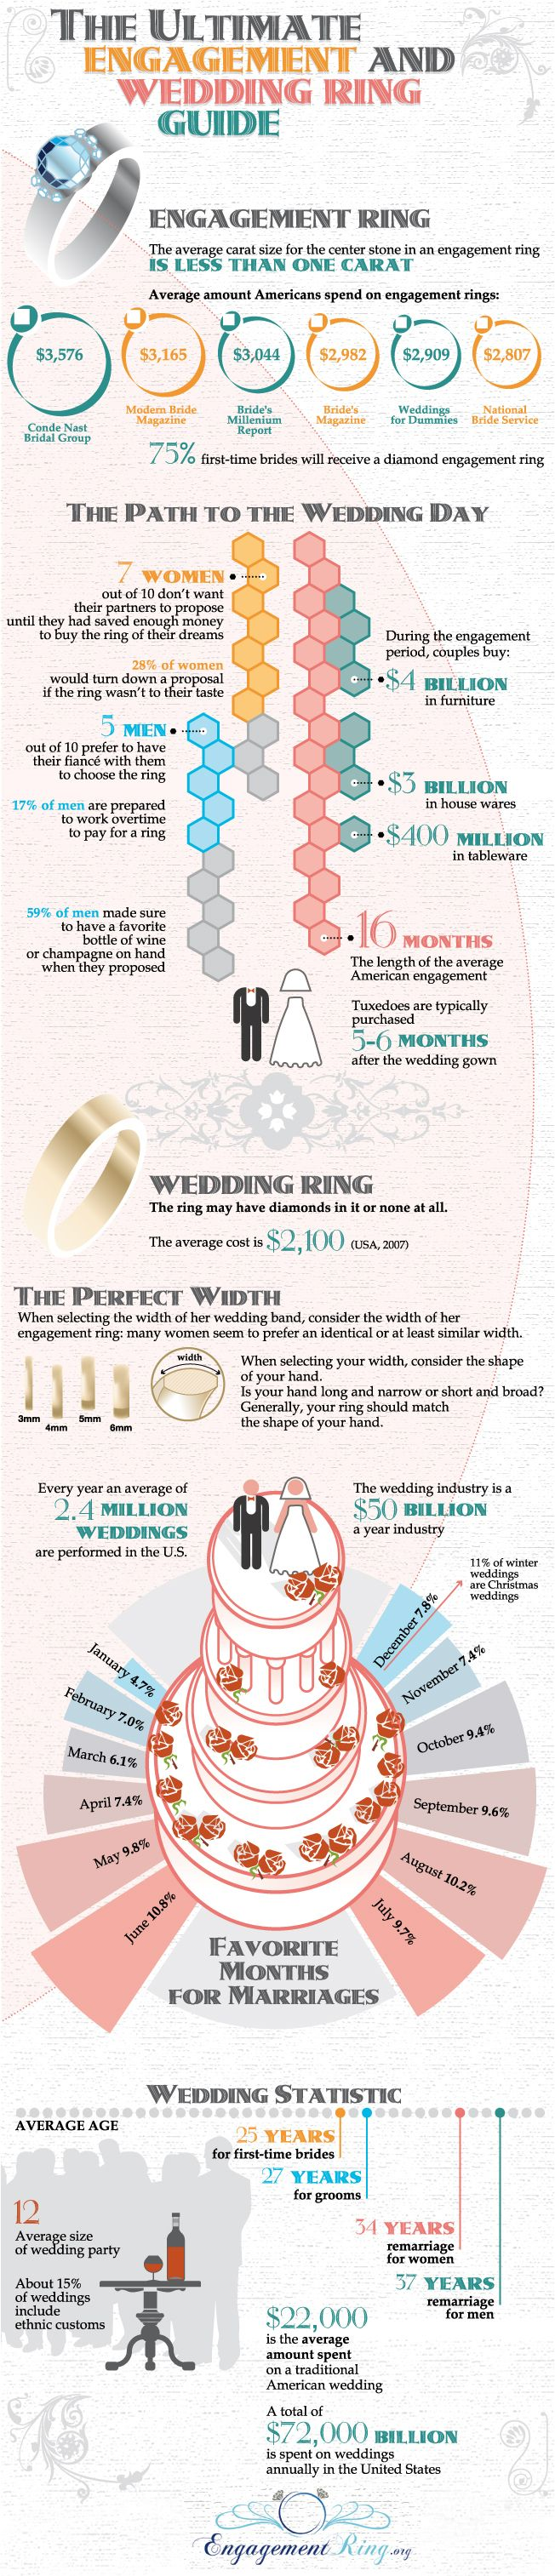 A Visual Representation Of Engagement Rings, Typical Wedding Plans And  Other Wedding Statistics And Facts